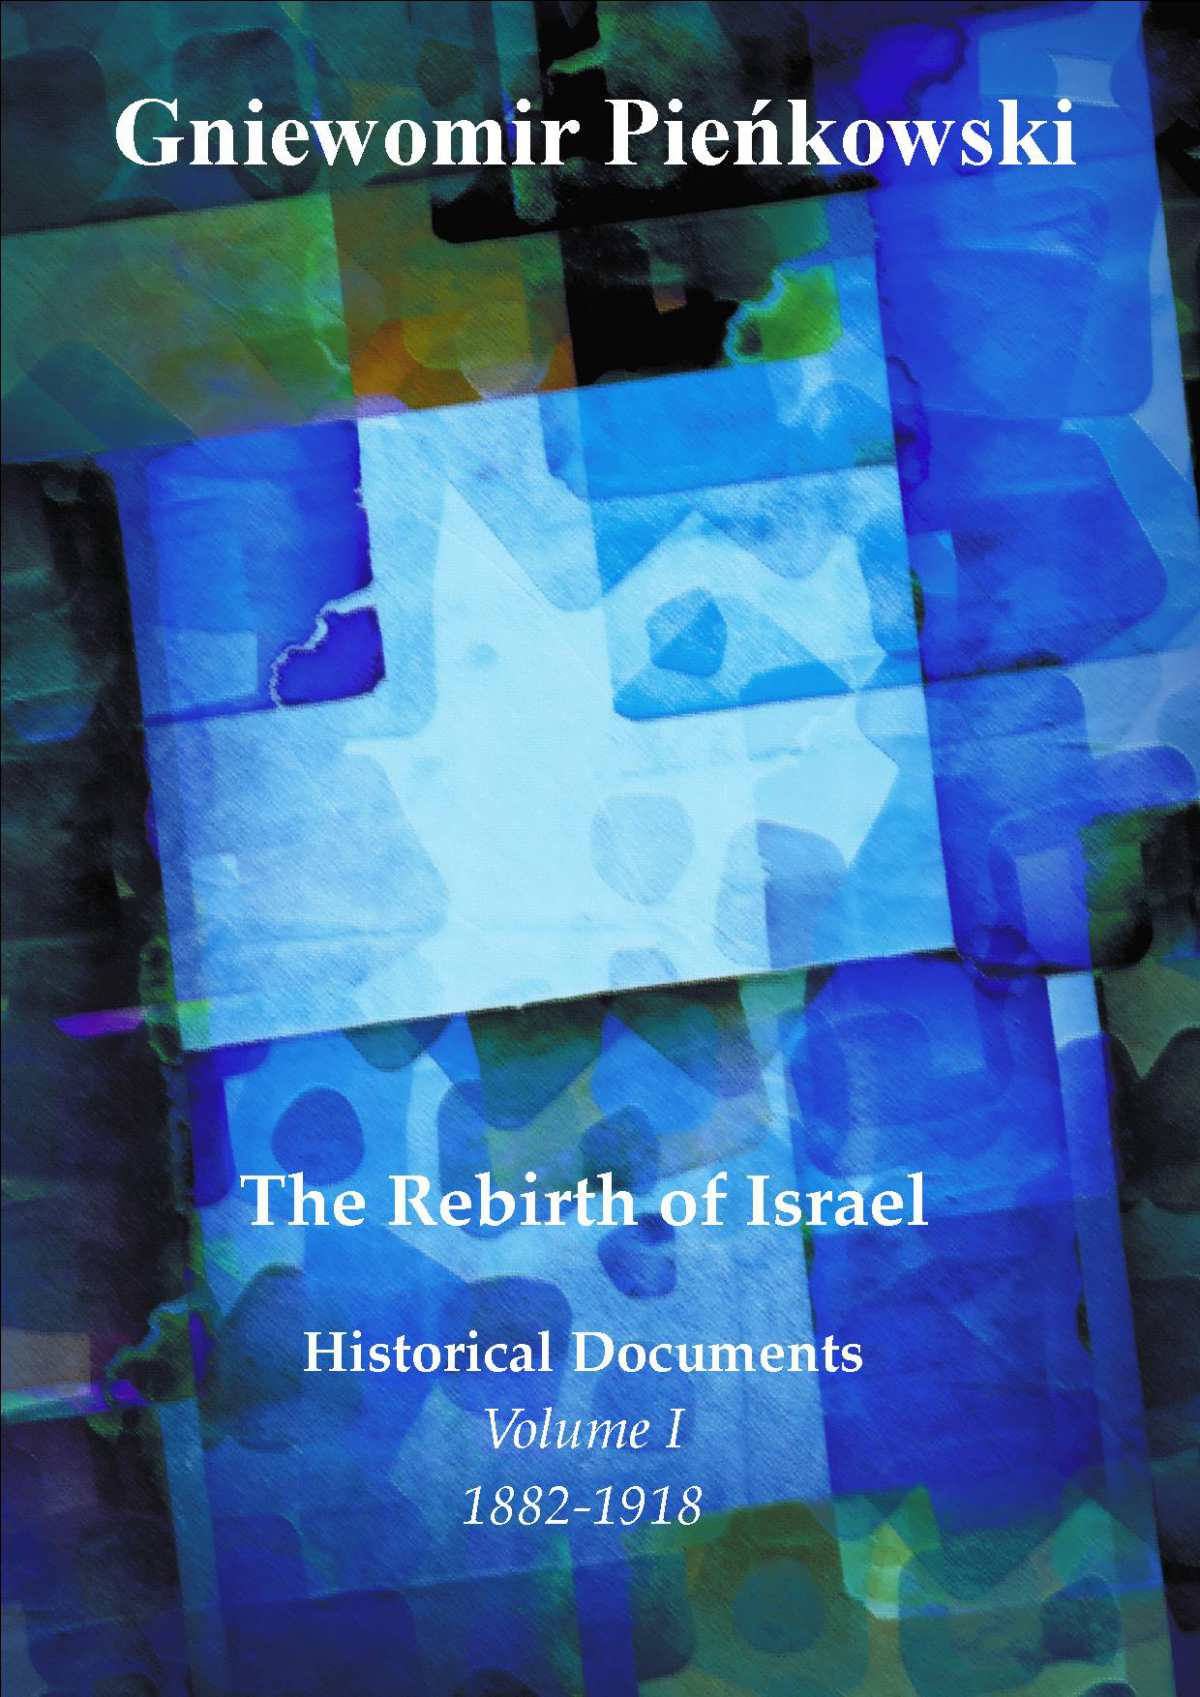 The Rebirth of Israel. Historical Documents. Volume I: 1882-1918. - Ebook (Książka PDF) do pobrania w formacie PDF